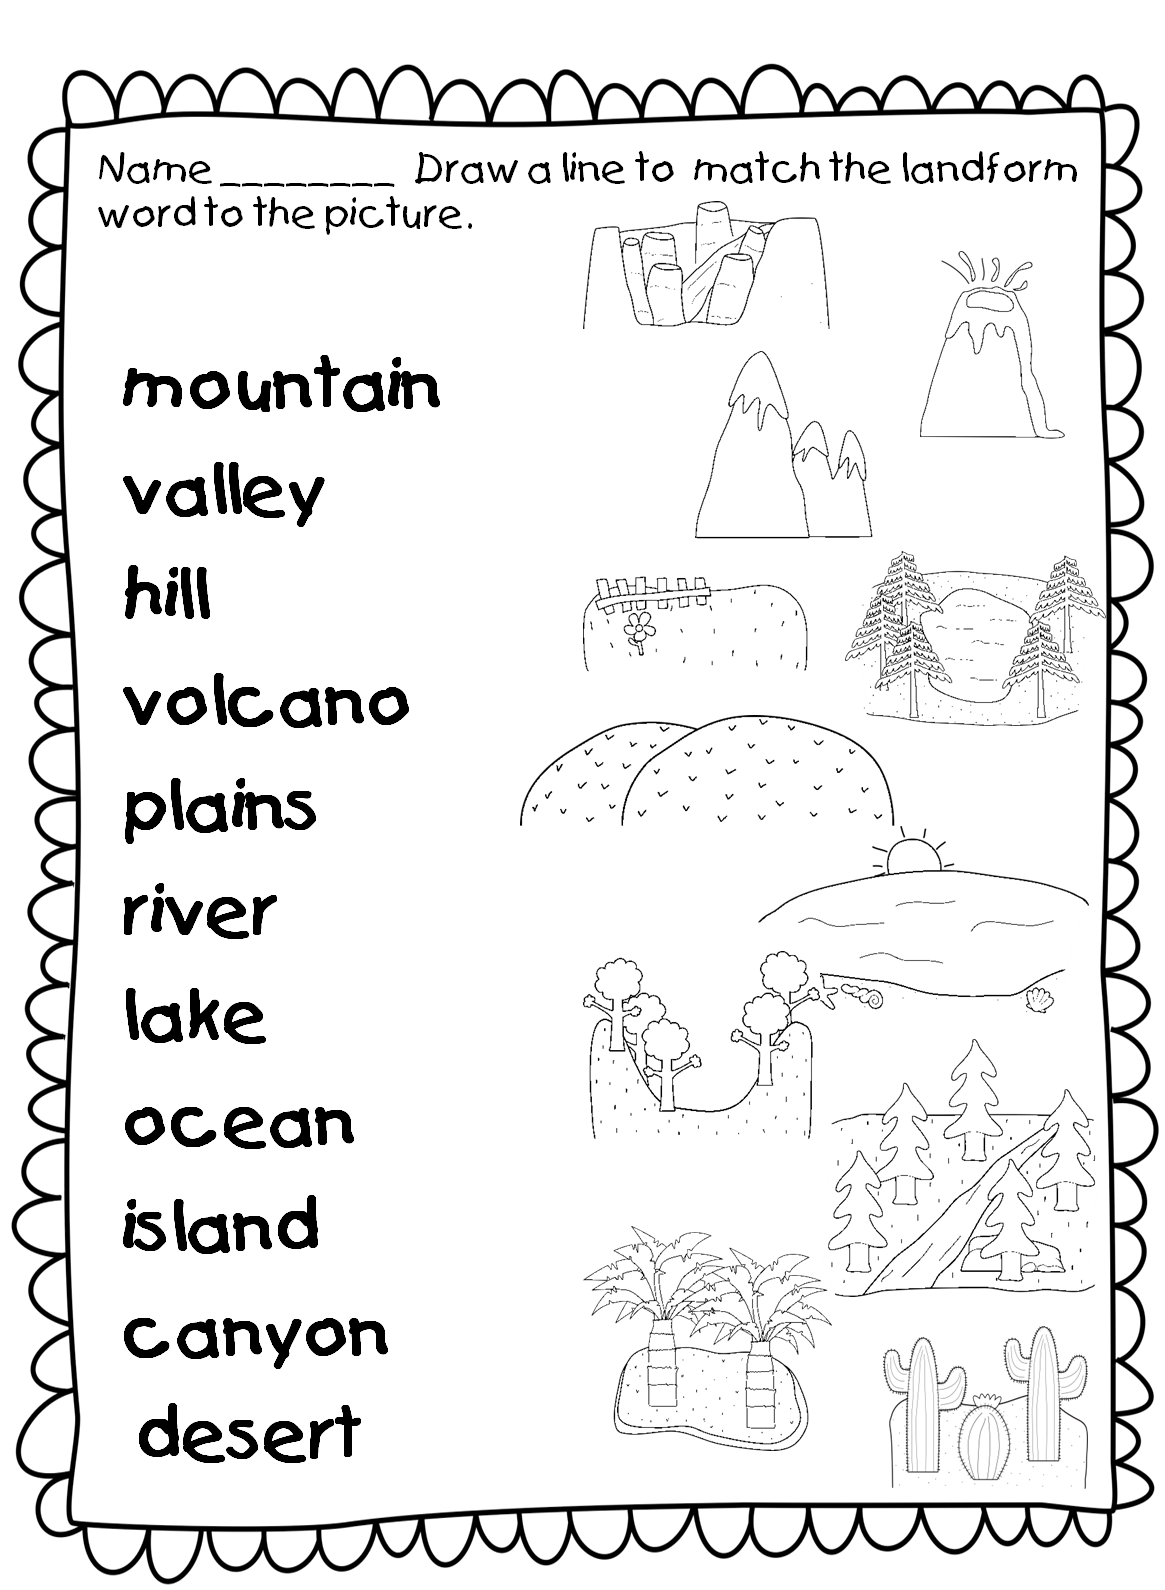 Worksheets Landform Worksheets first grade simple matching worksheet to test students knowledge of landforms before or during unit